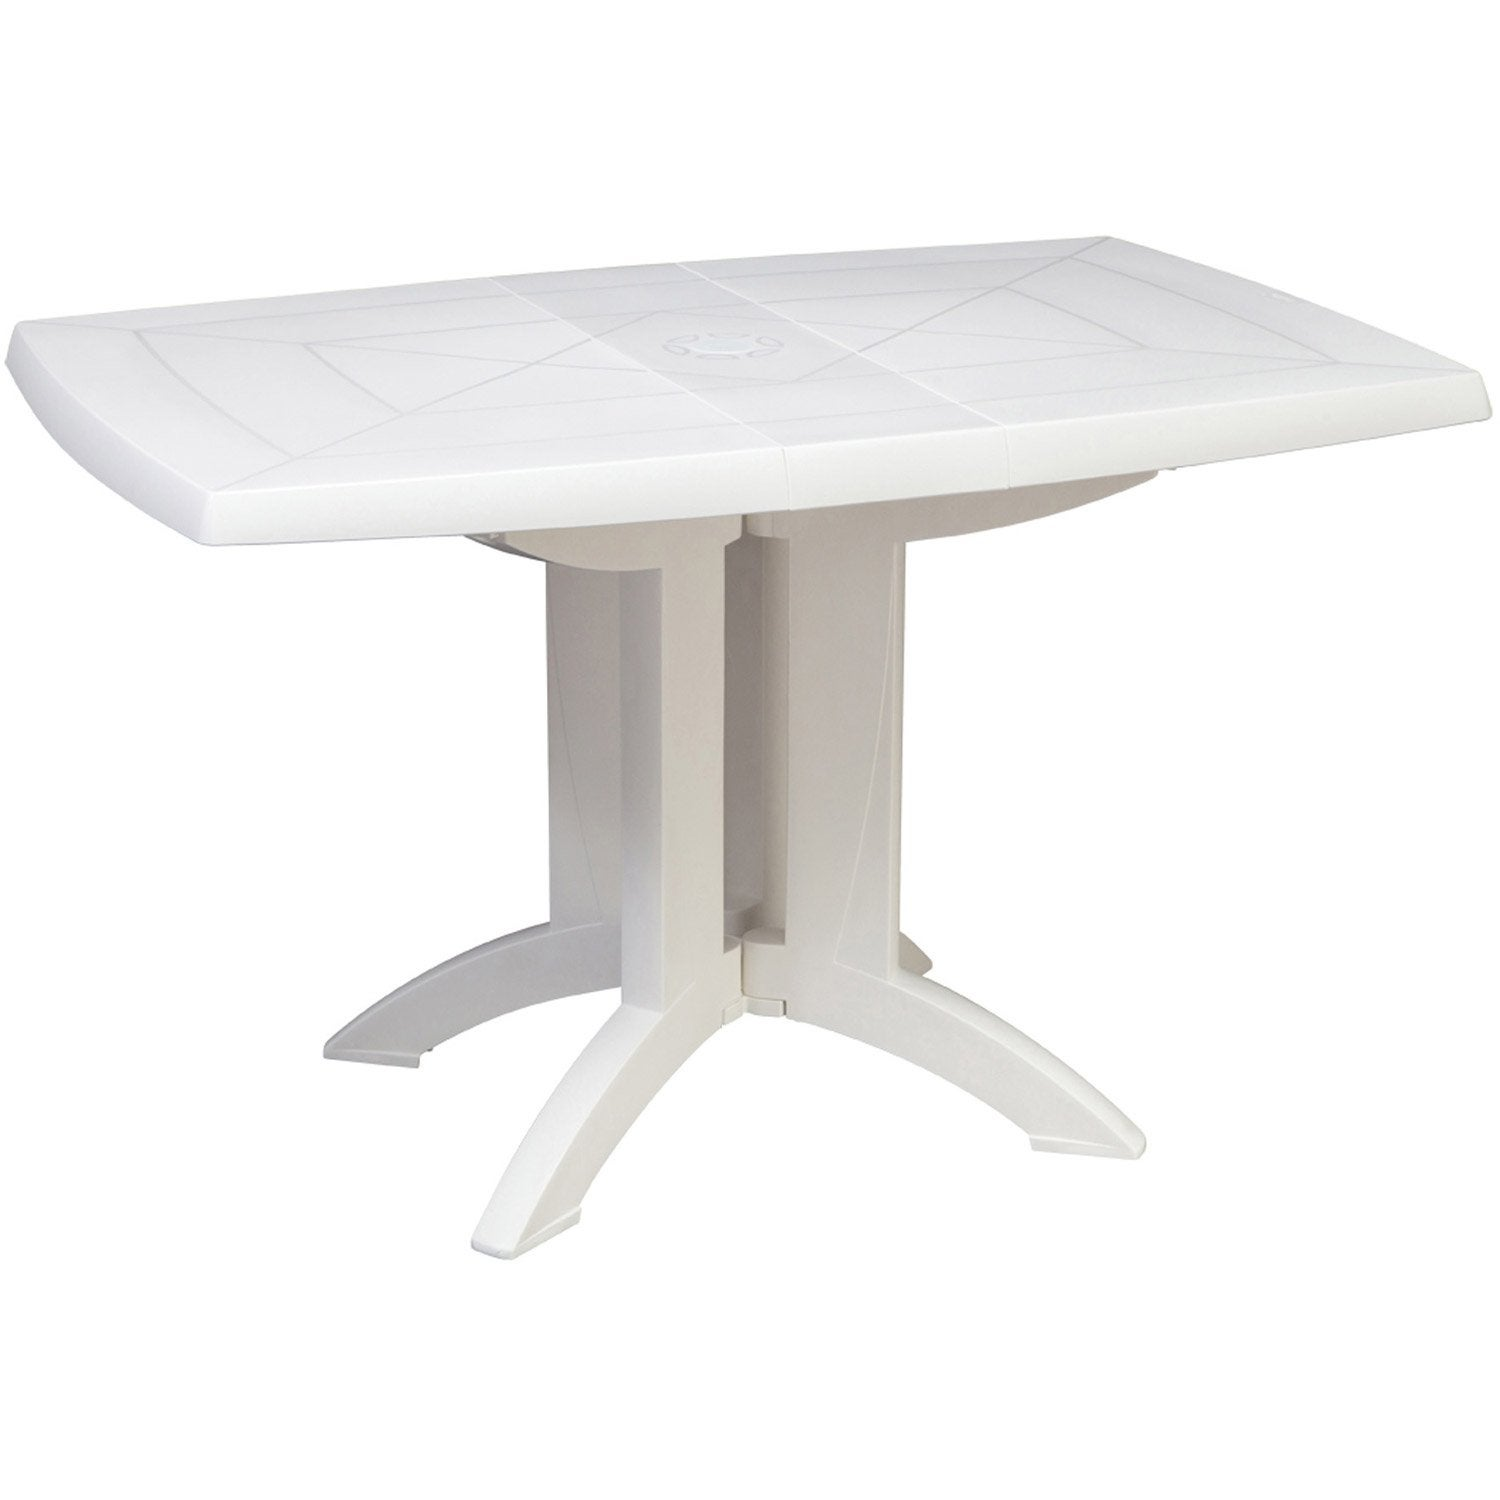 table de jardin grosfillex v ga rectangulaire blanc 4 personnes leroy merlin. Black Bedroom Furniture Sets. Home Design Ideas